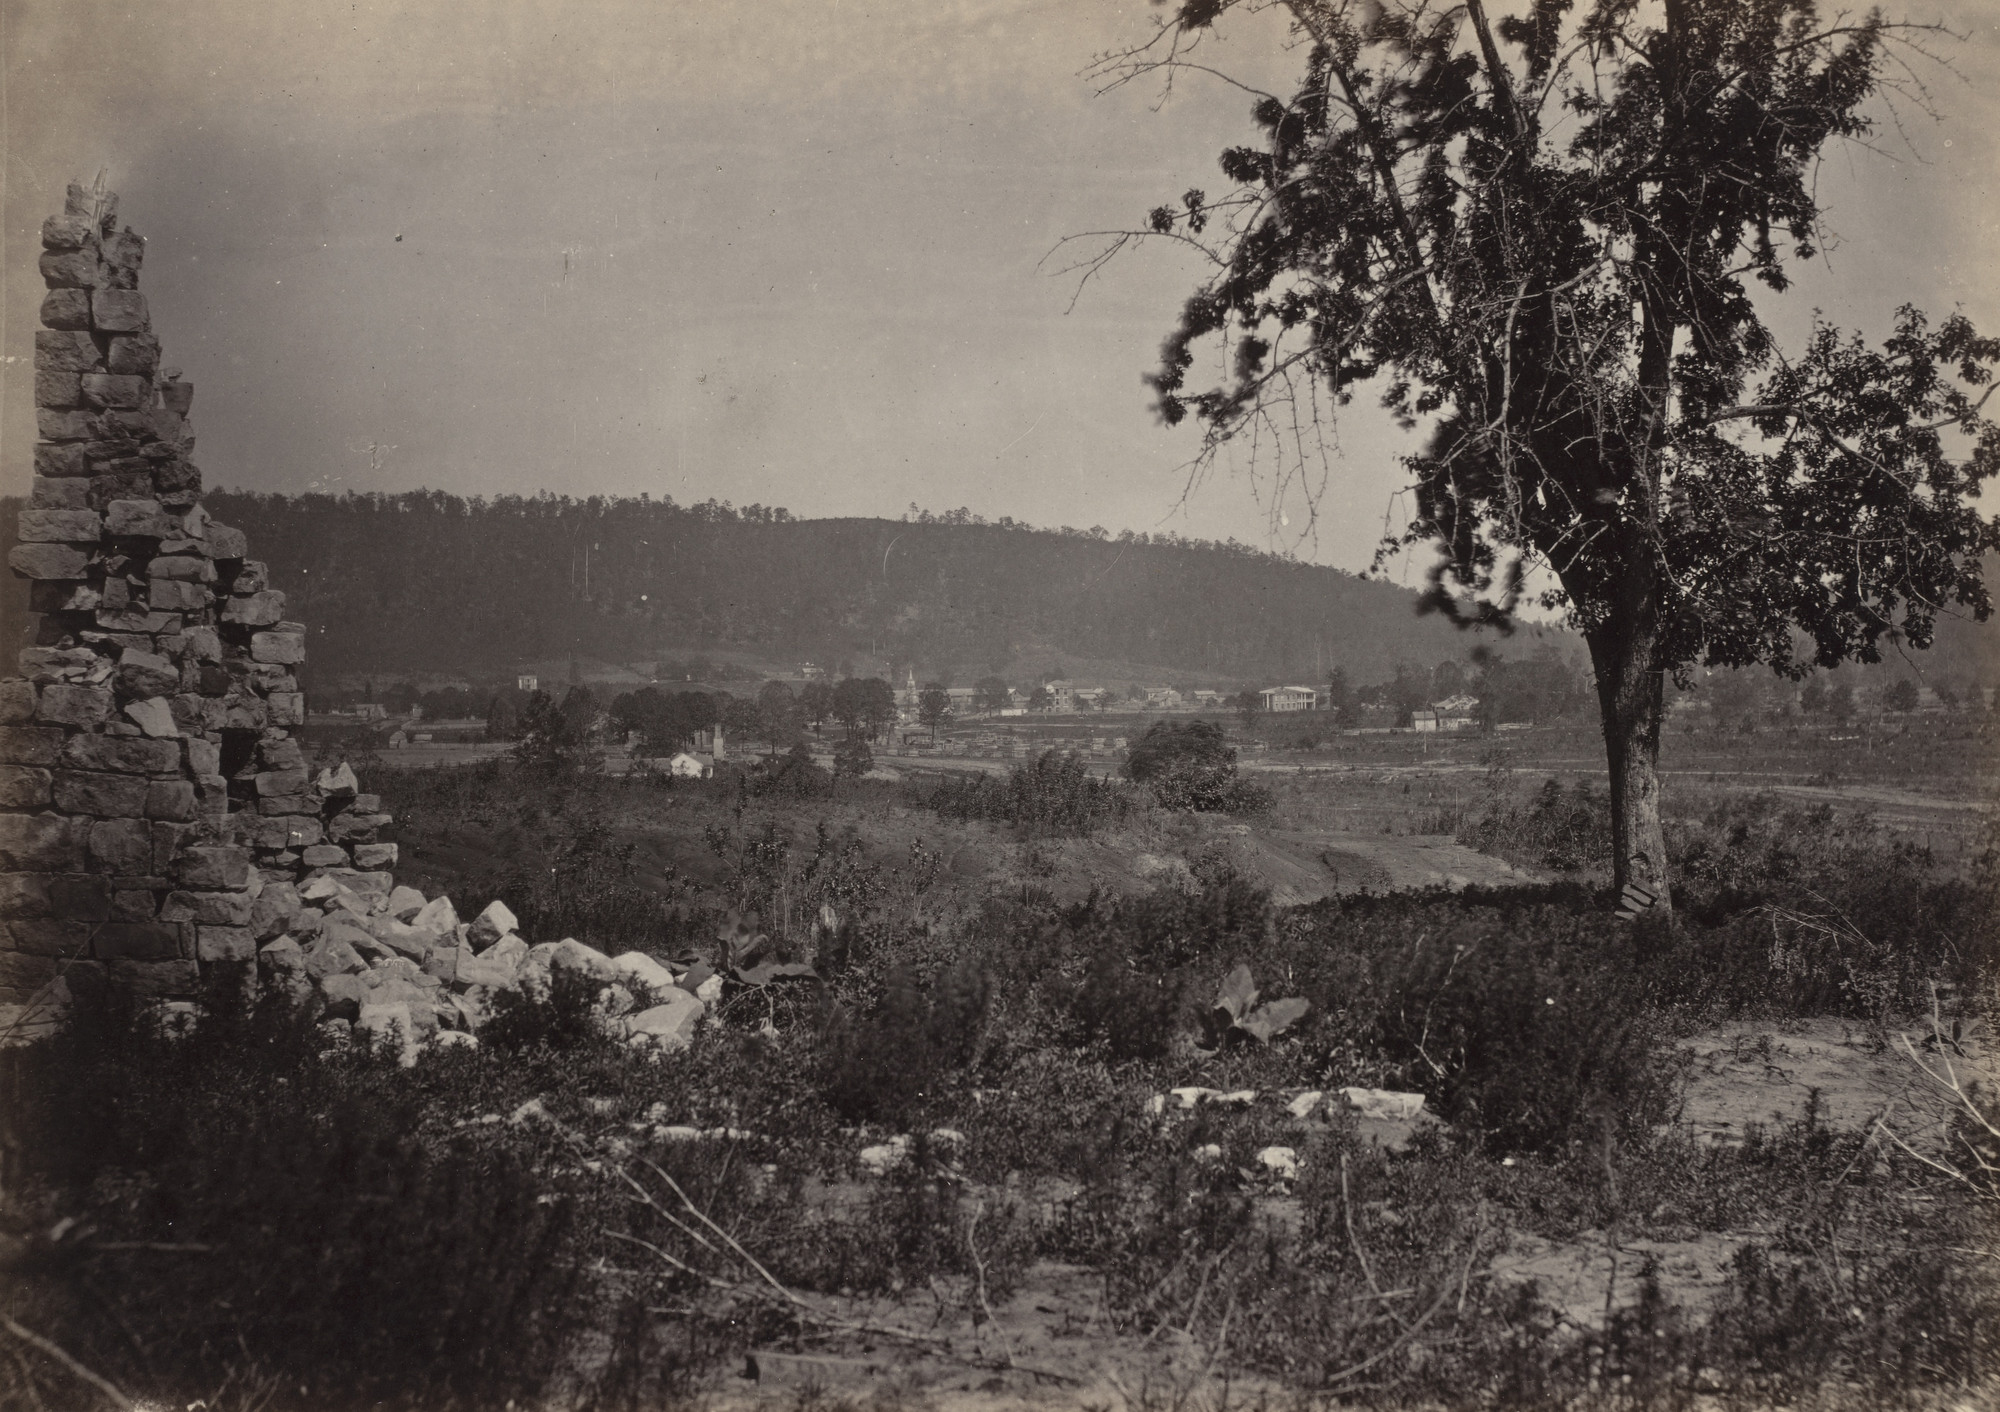 George Barnard. Ringold, Georgia from the album Photographic Views of Sherman's Campaign. 1864-65